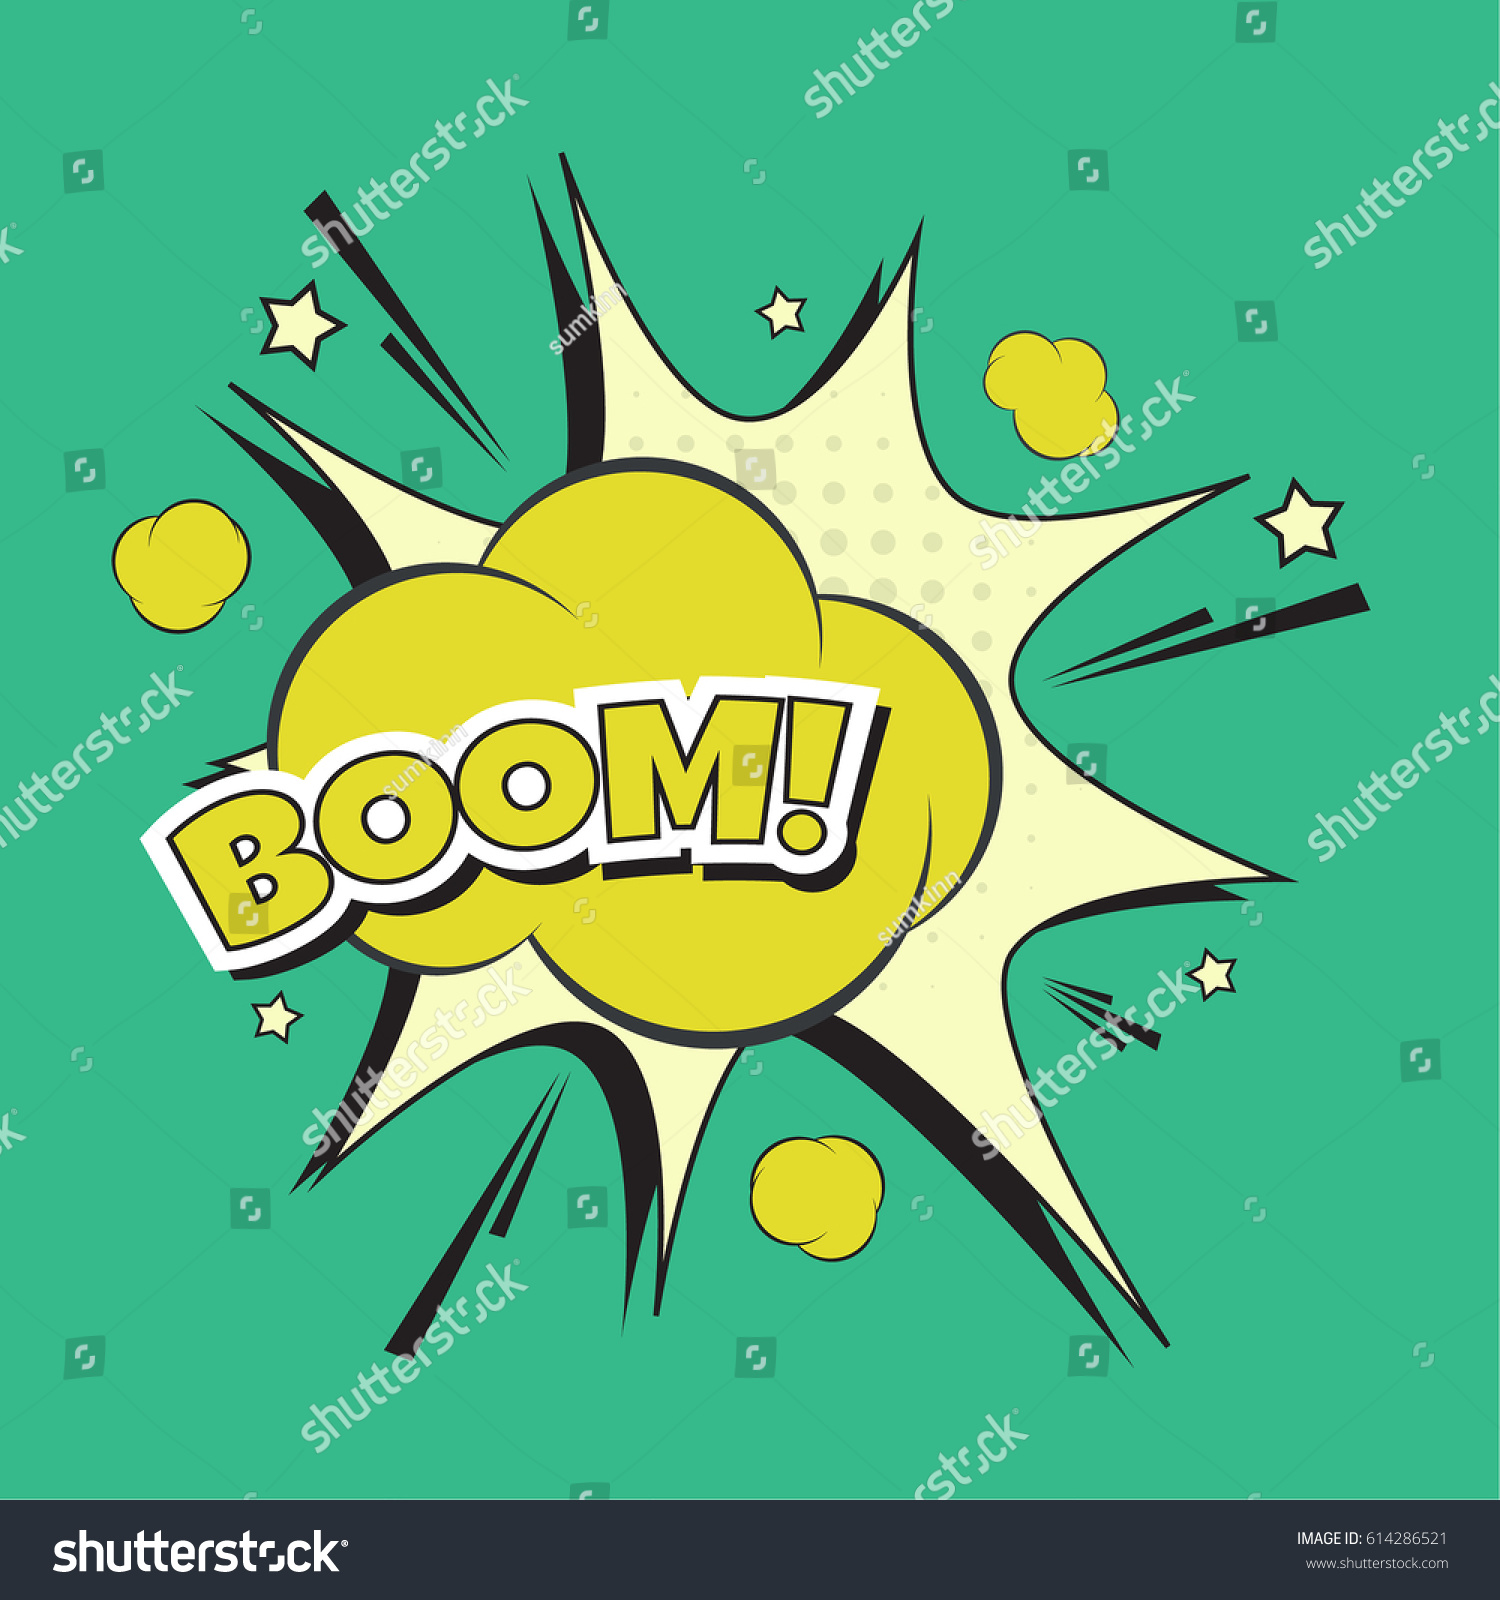 Vector Lettering Boom Bomb Explosion Color Stock Vector (Royalty ...